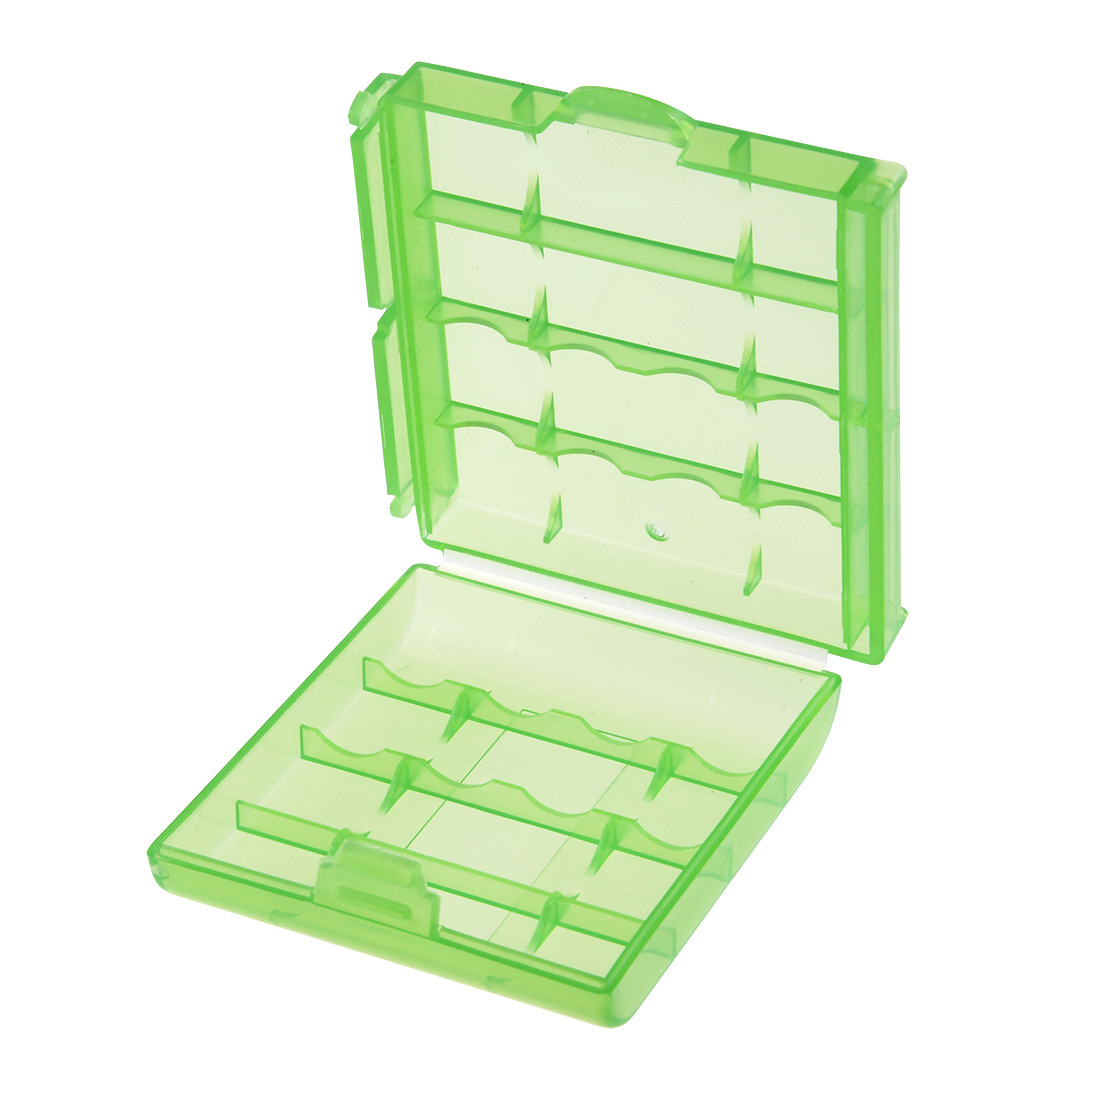 Unique Bargains Portable Battery Storage Case Container Compartment Green for AAA/AA Batteries - image 2 of 4